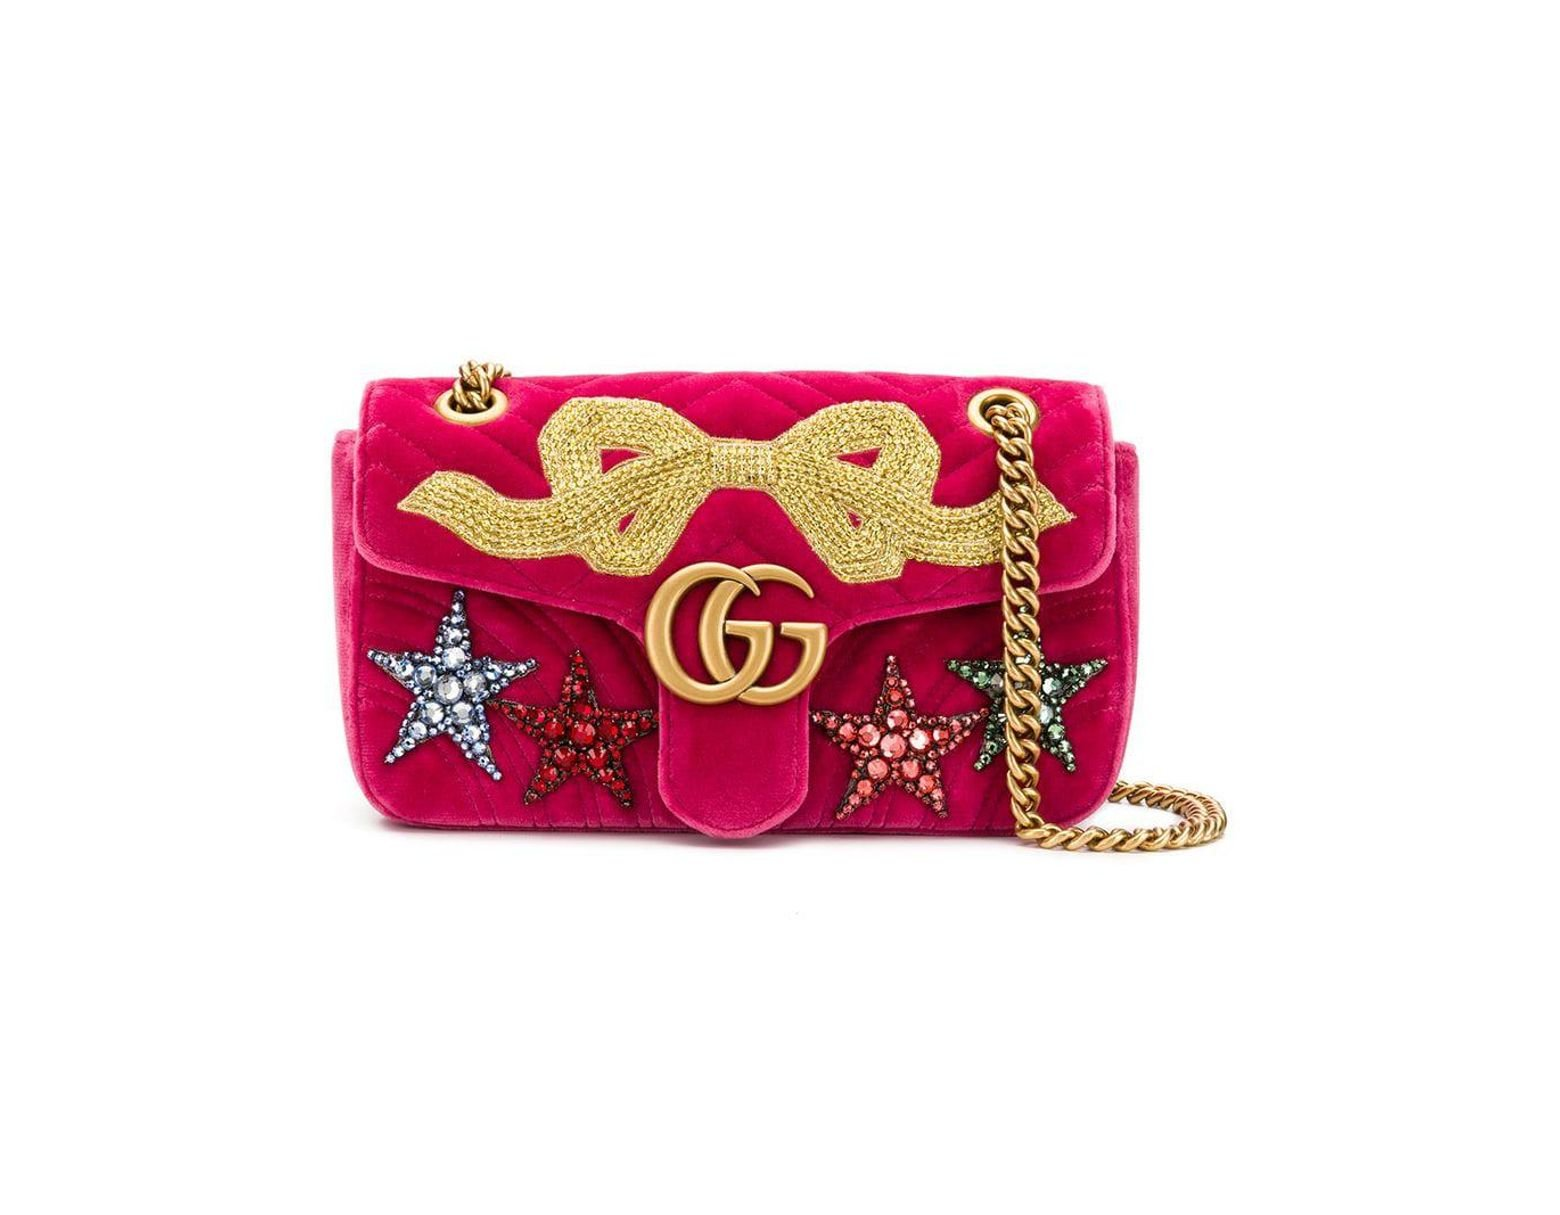 302d358699e Gucci GG Marmont Small Velvet Shoulder Bag in Pink - Lyst